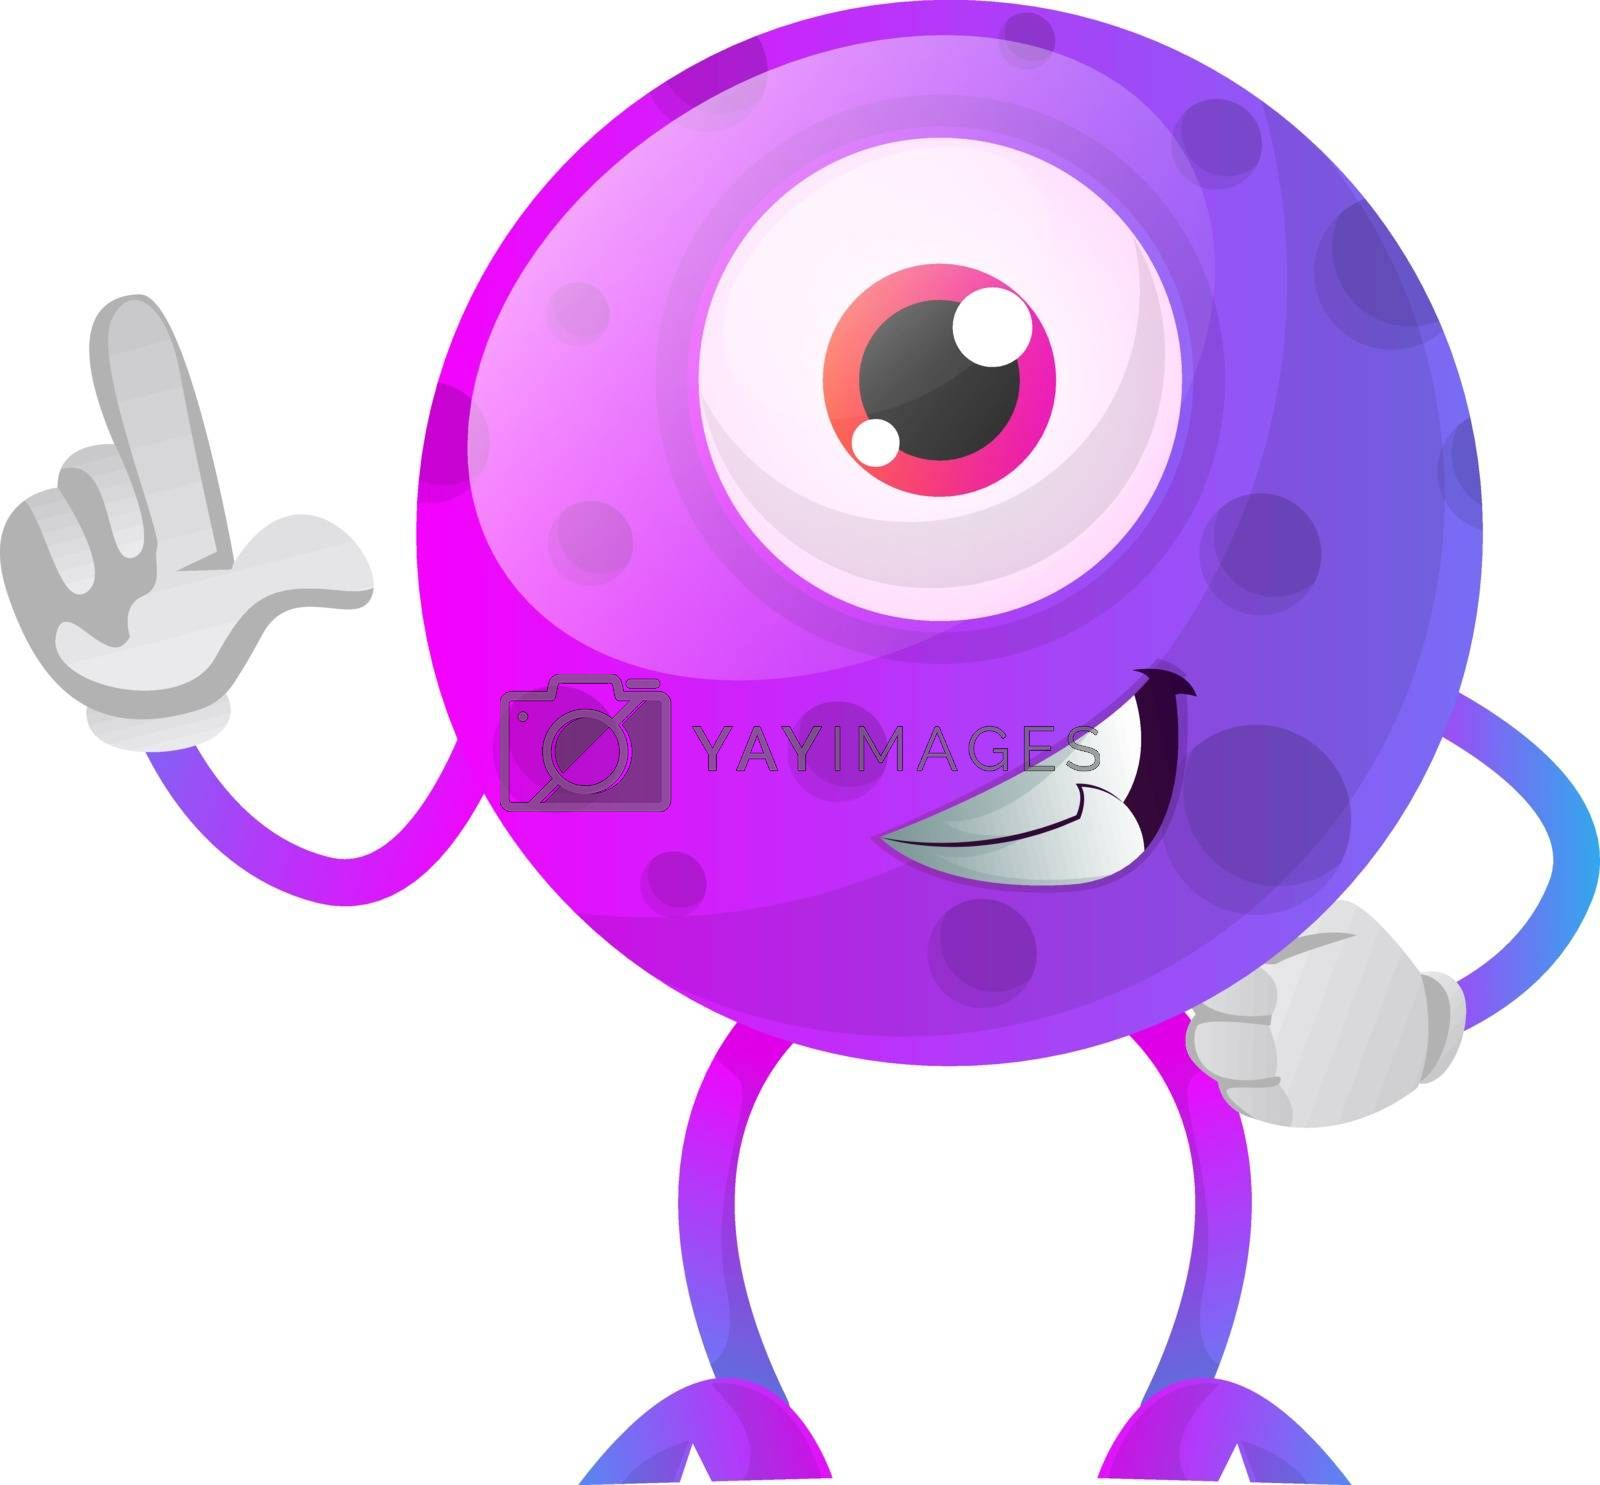 Royalty free image of One thumbs up purple monster illustration vector on white backgr by Morphart